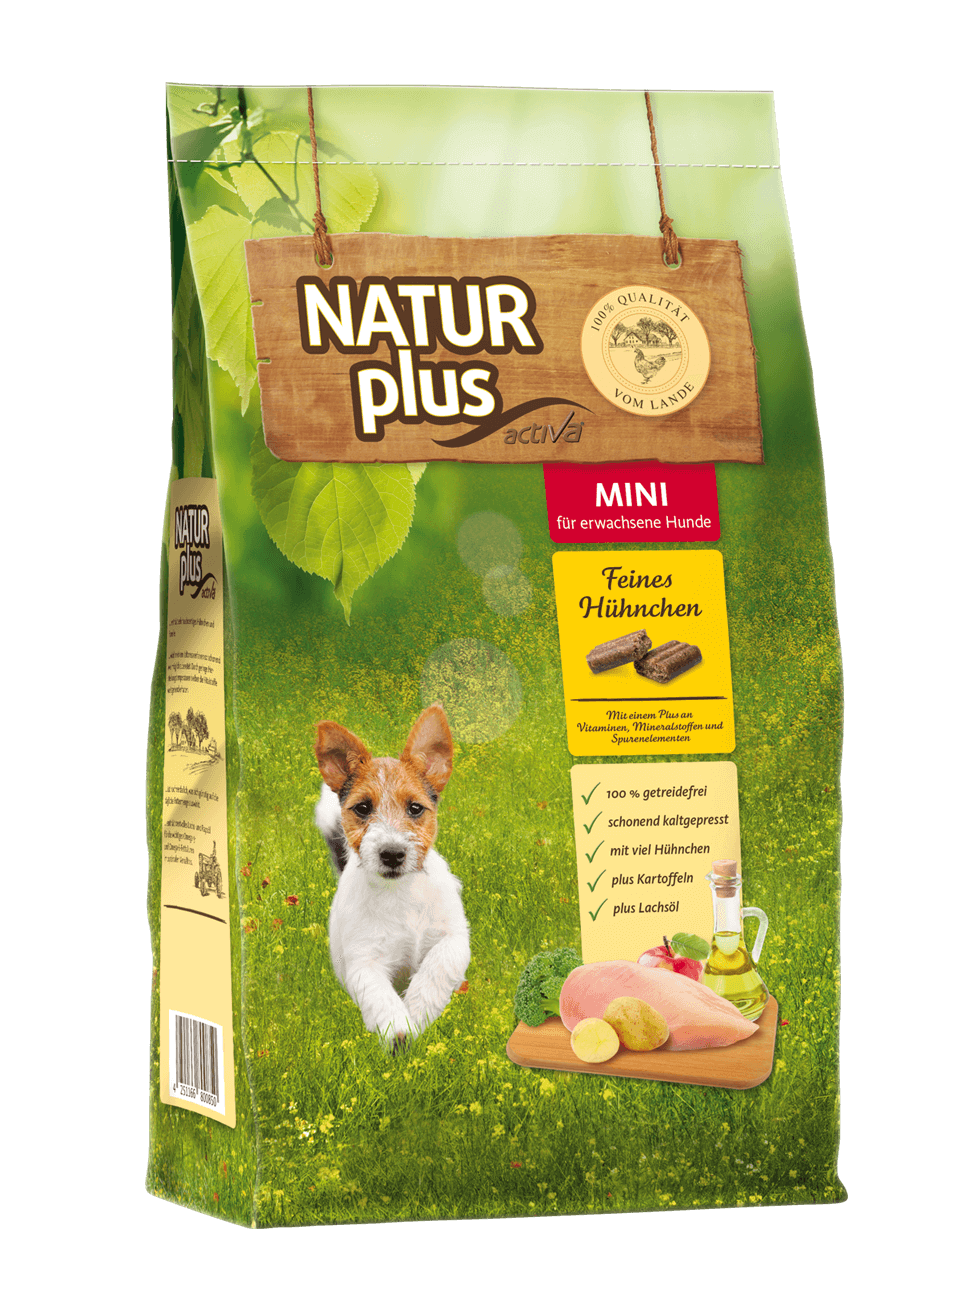 Natur plus Hund Mini